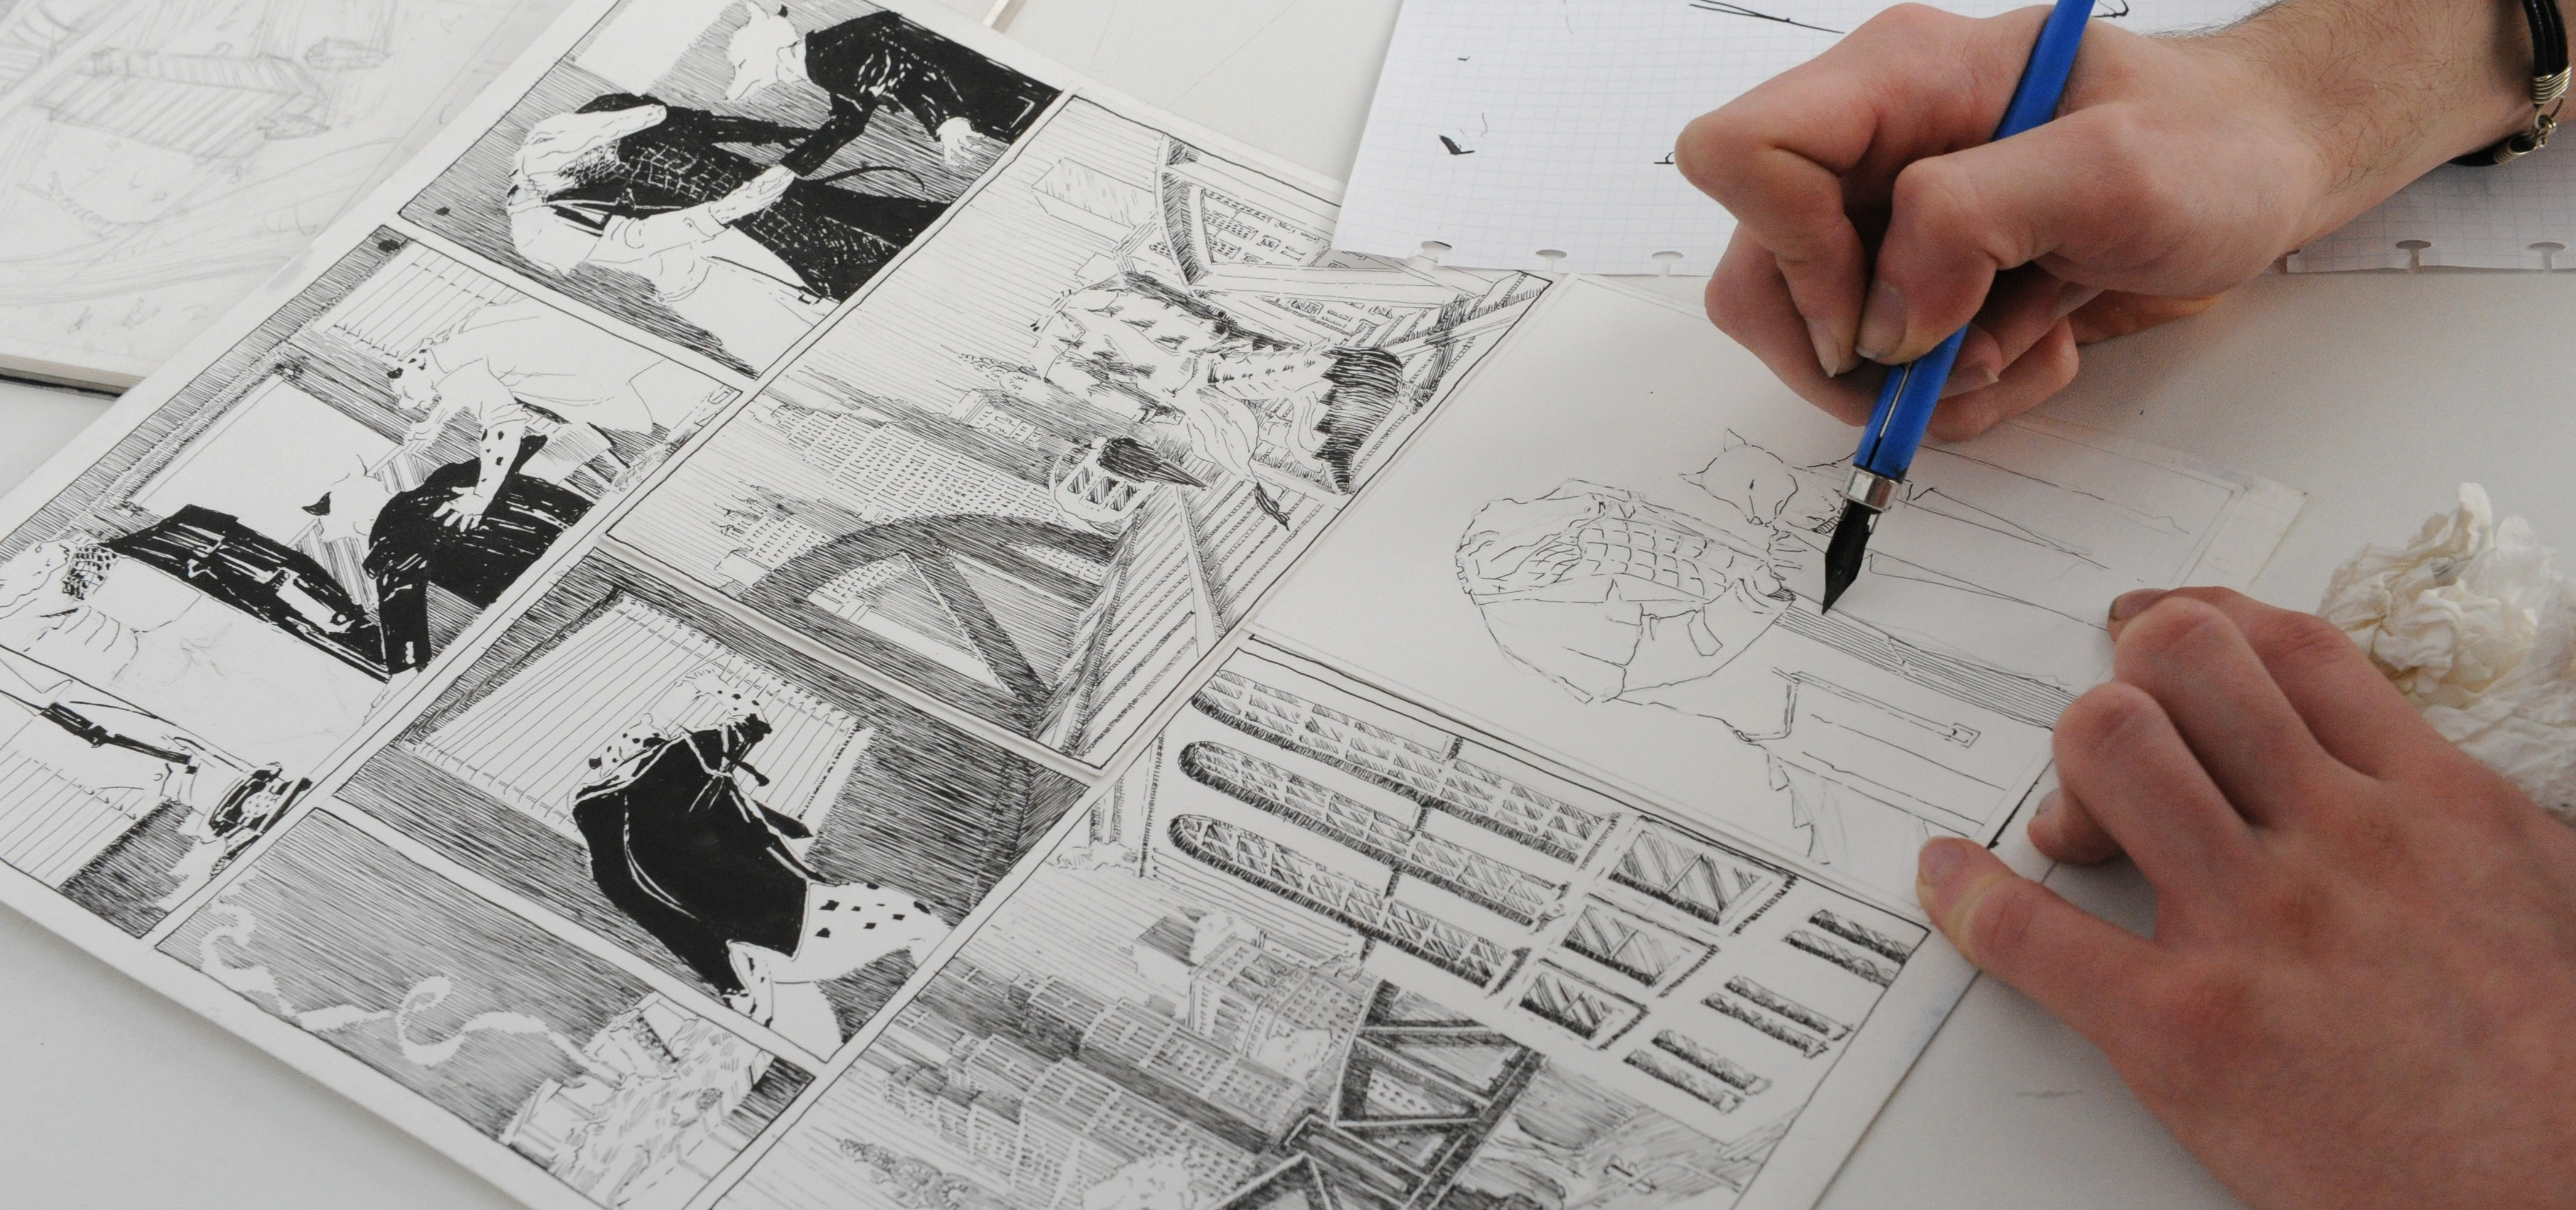 amazon storyteller launches creates storyboards from